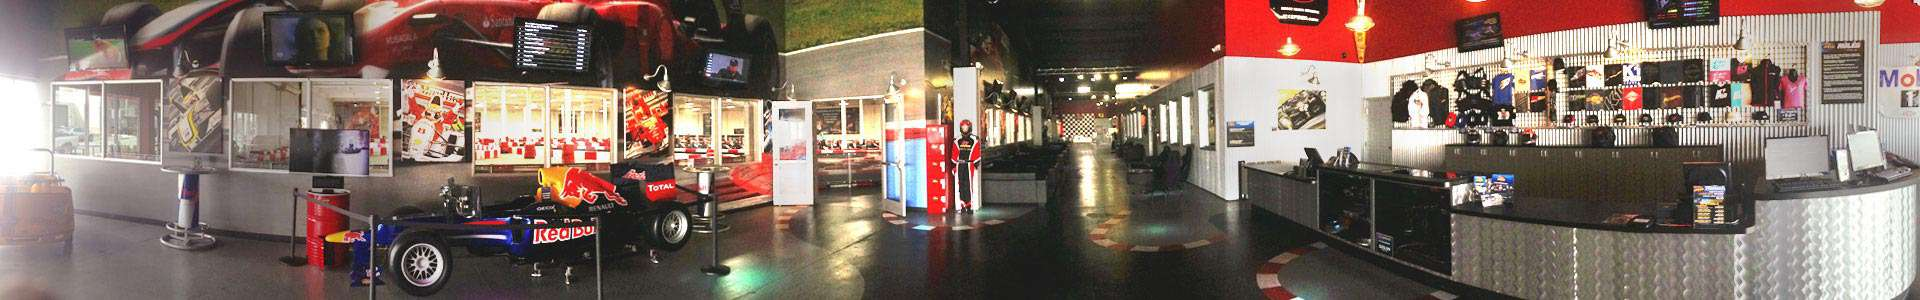 K1 Speed Indoor Go Kart Racing San Francisco